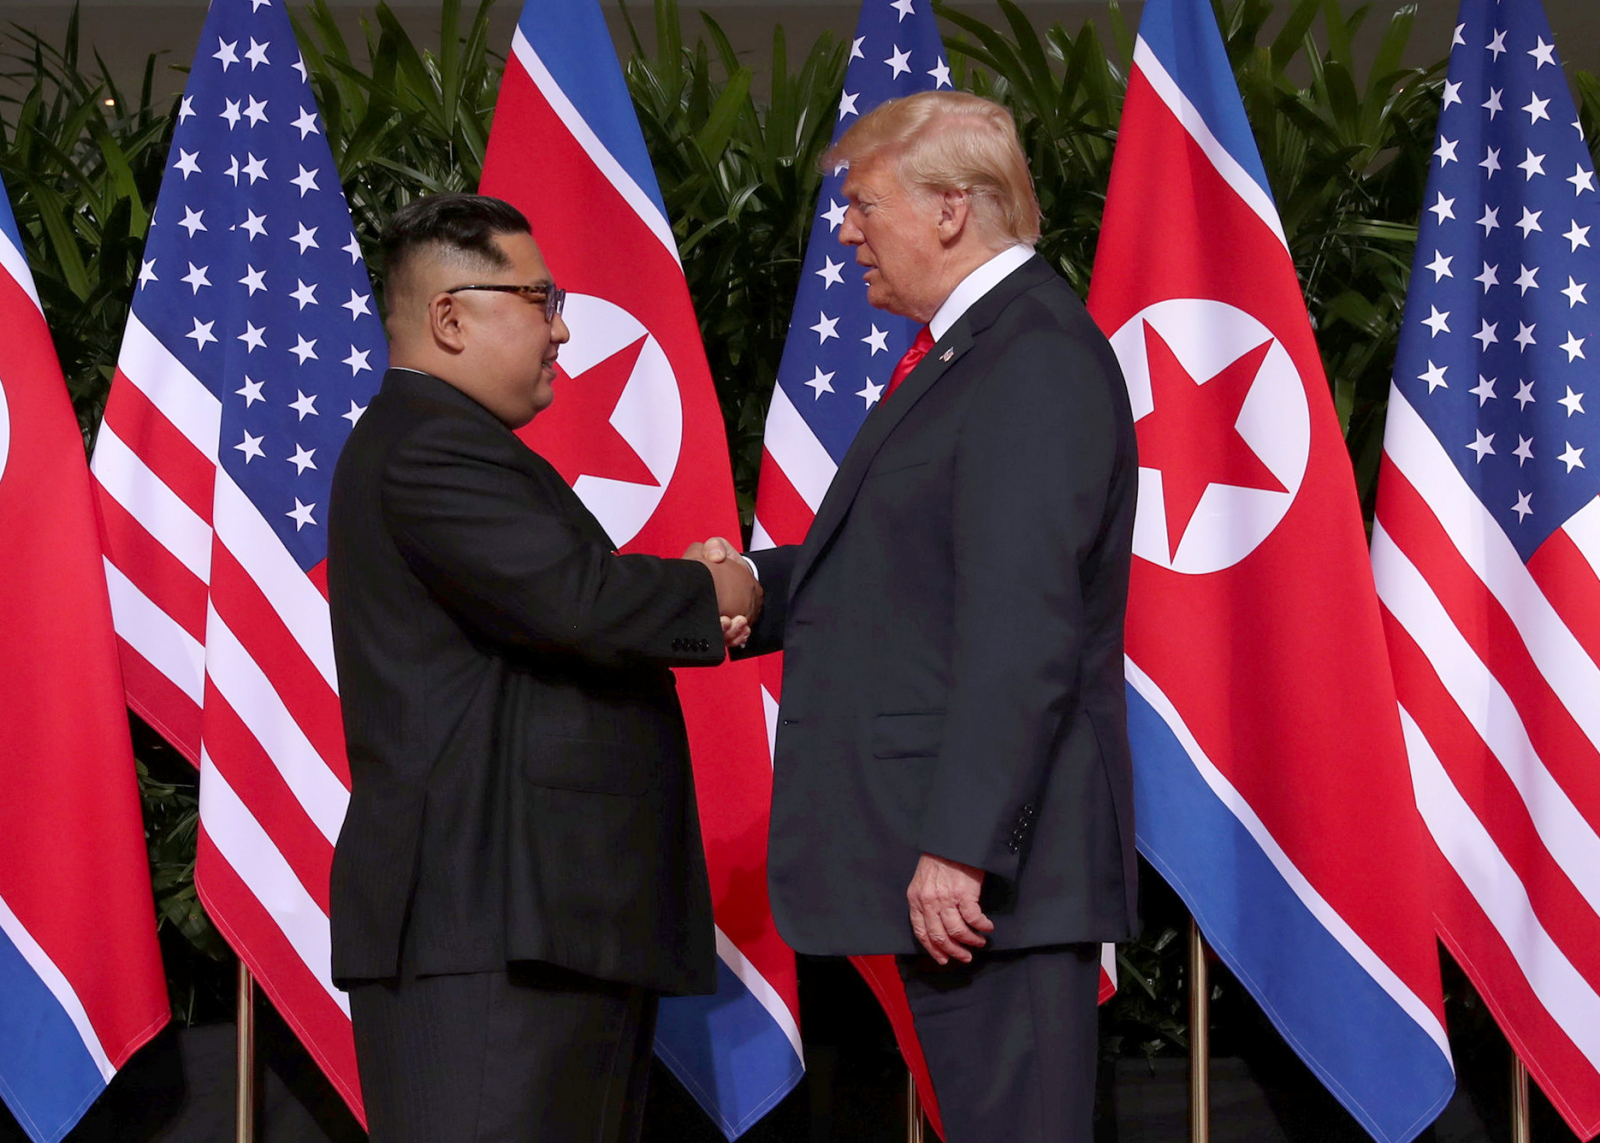 Donald Trump shakes hands with Kim Jong Un